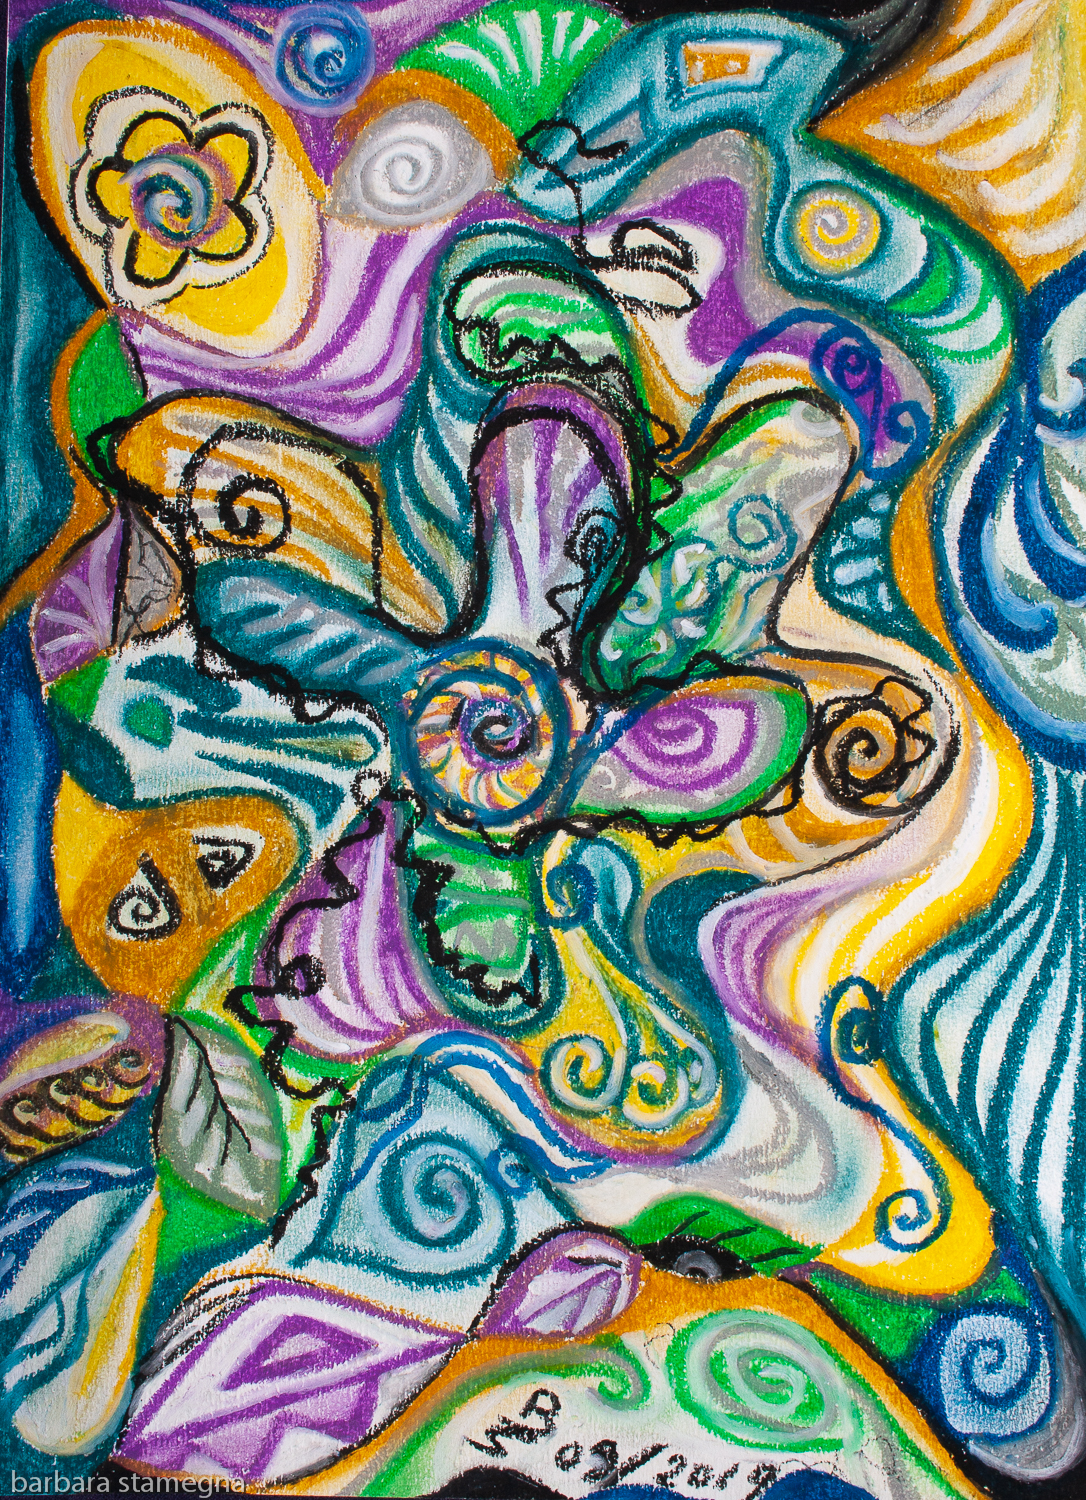 multicolored curved shapes and bended lines abstract image composition in tones of blue,yellow,green,white,purple and black.